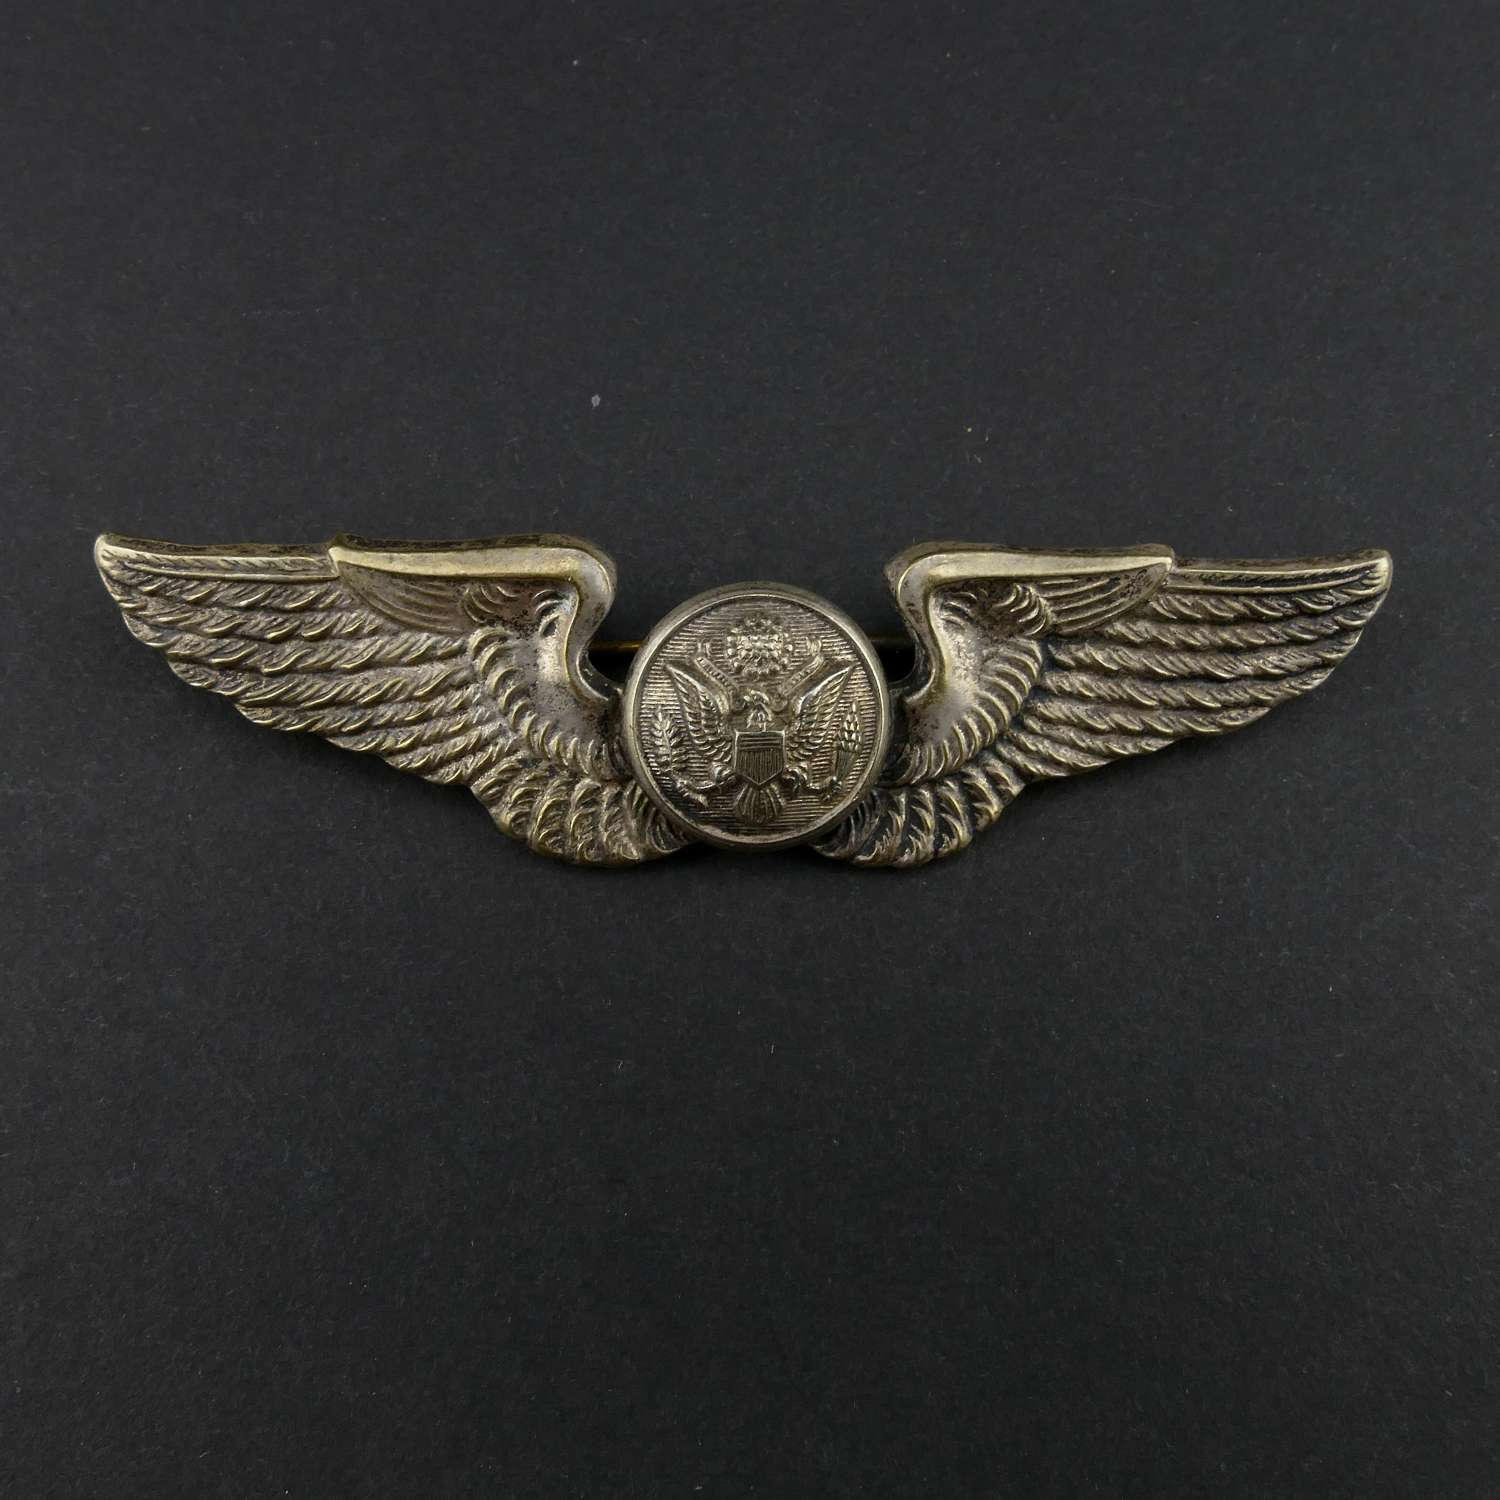 USAAF aircrew wing - English made